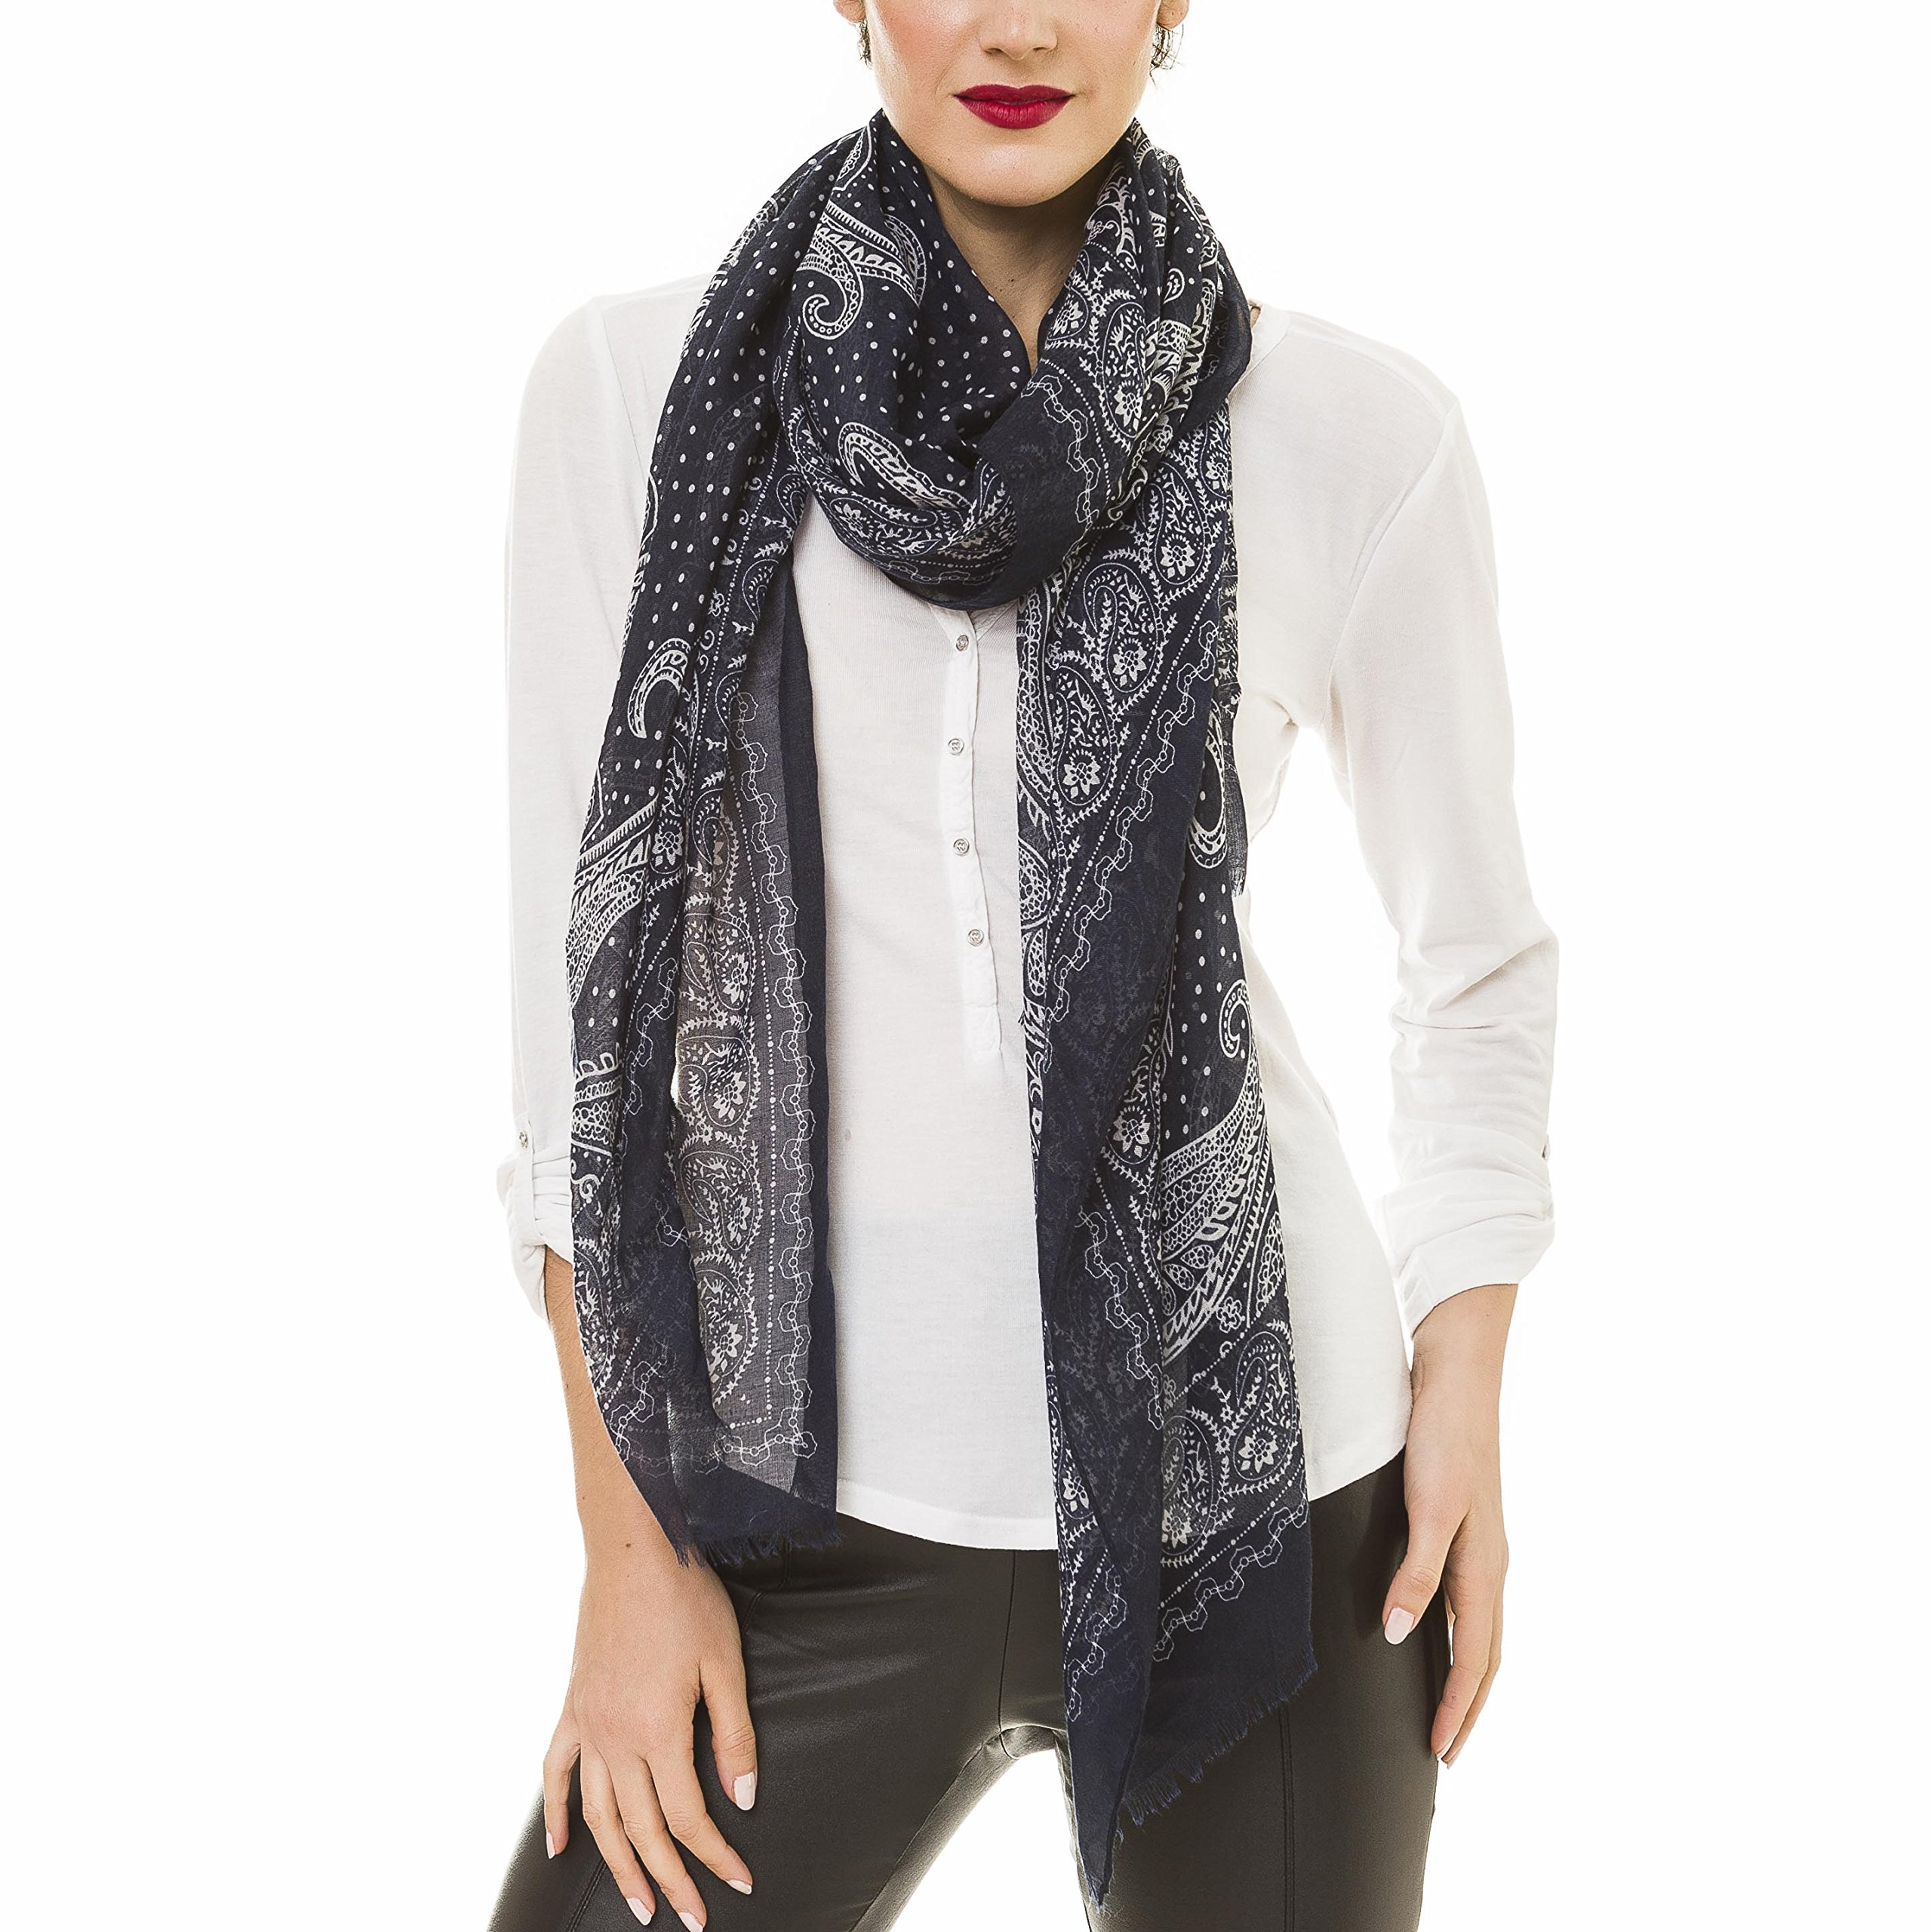 Scarf for Women Lightweight Paisley Fashion Fall Winter Scarves Shawl Wraps (NF46-2)